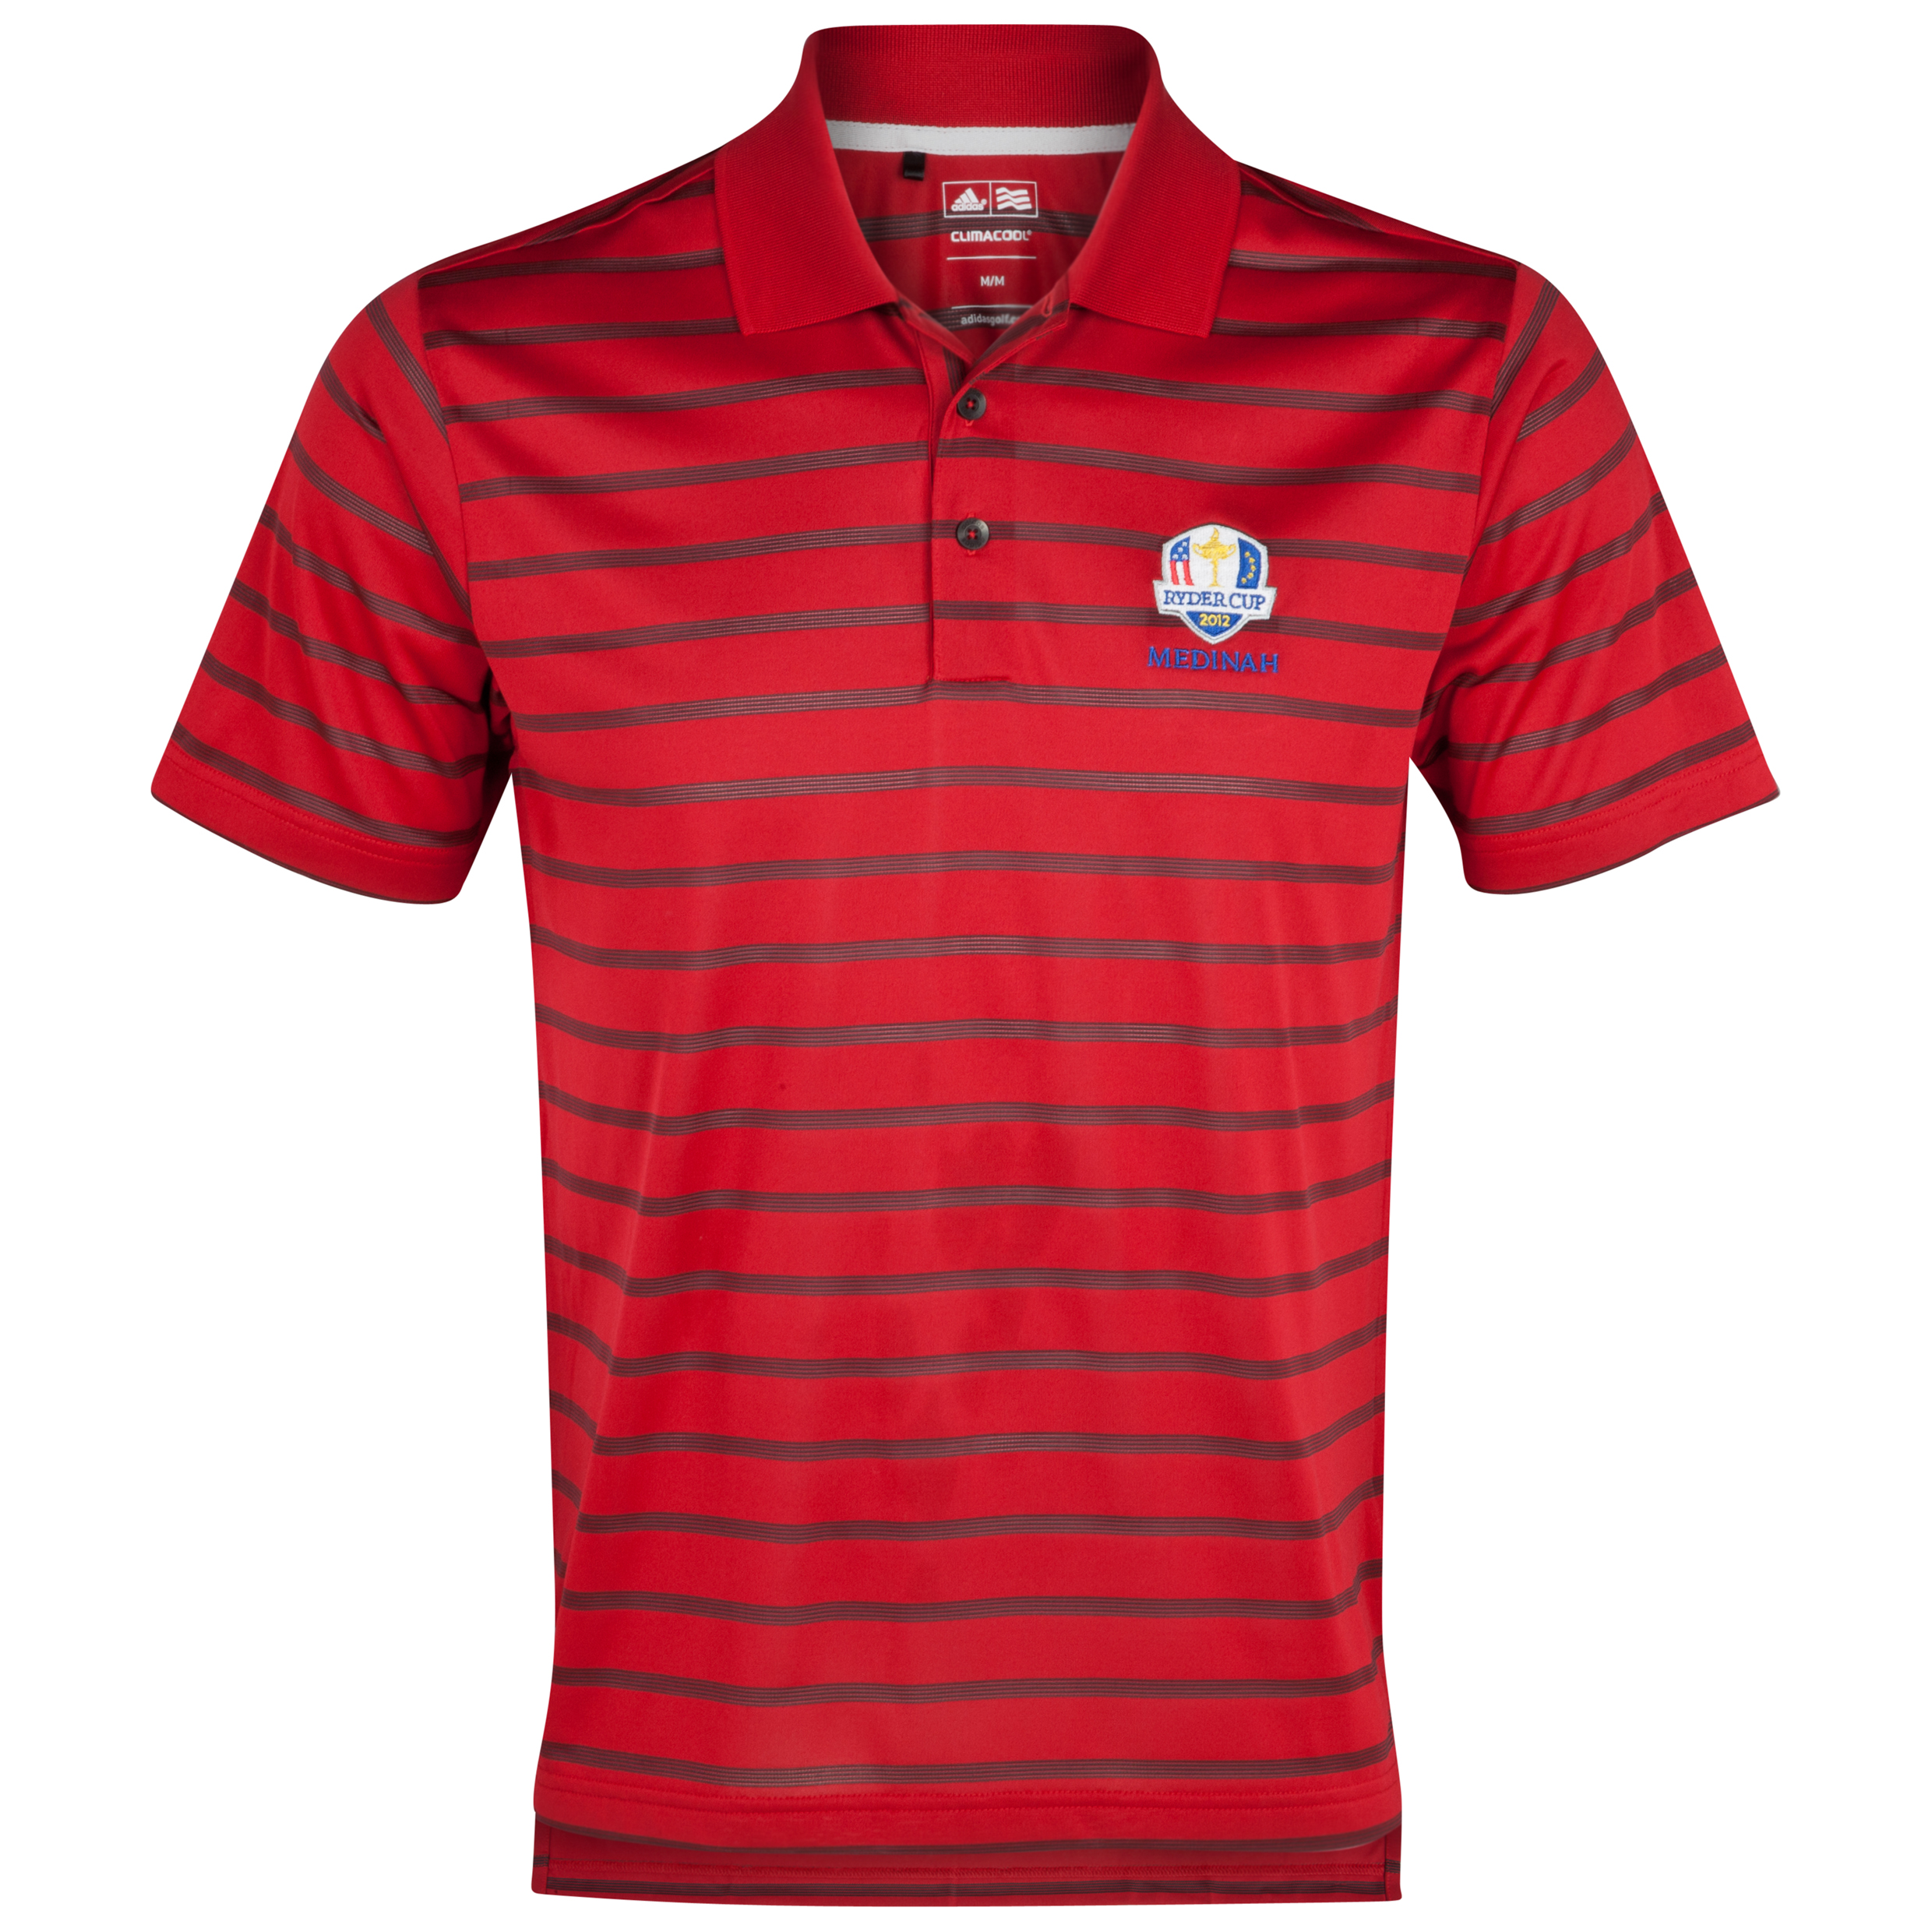 The Ryder Cup Medinah 2012 adidas ClimaCool Textured Stripe Polo - University Red/Black